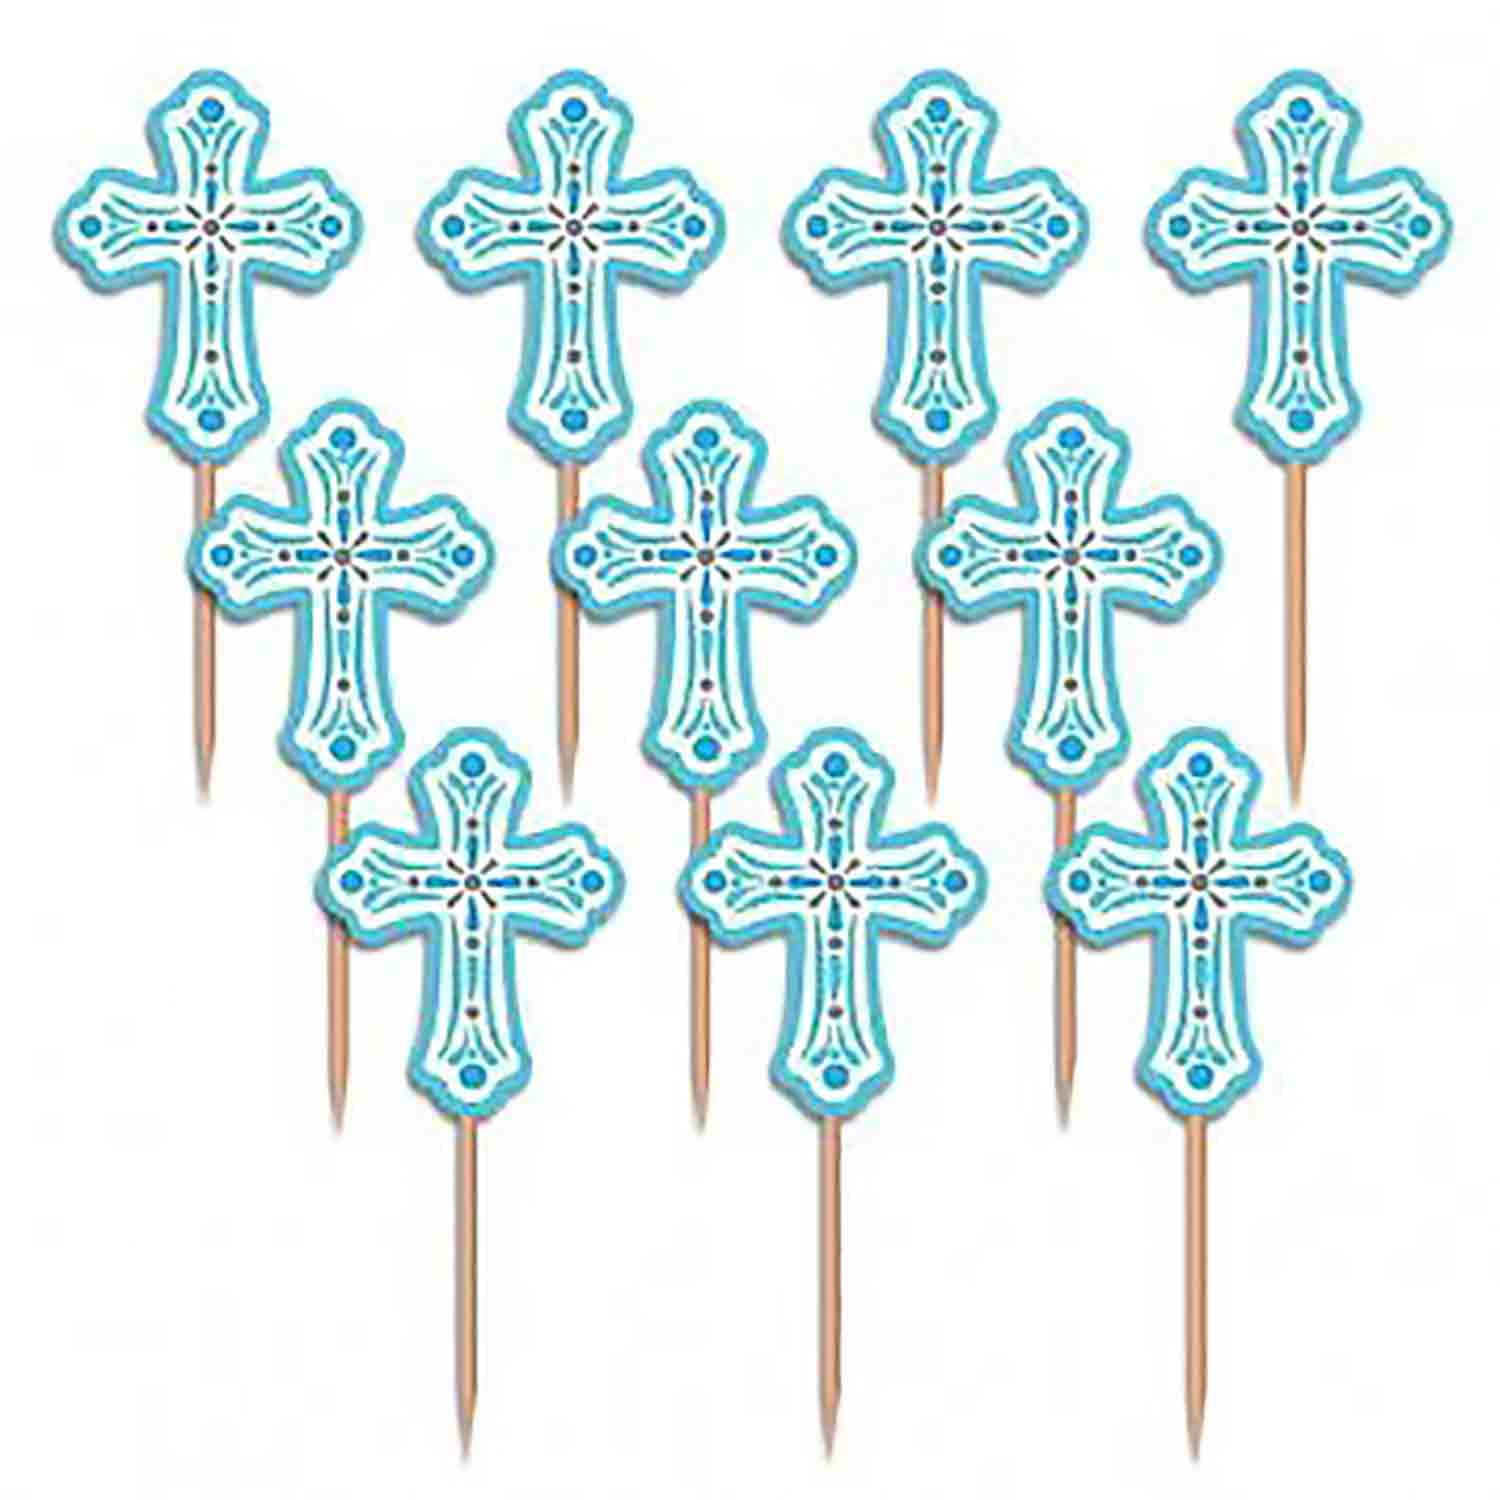 Religious Cake and Cupcake Toppers and Decorations